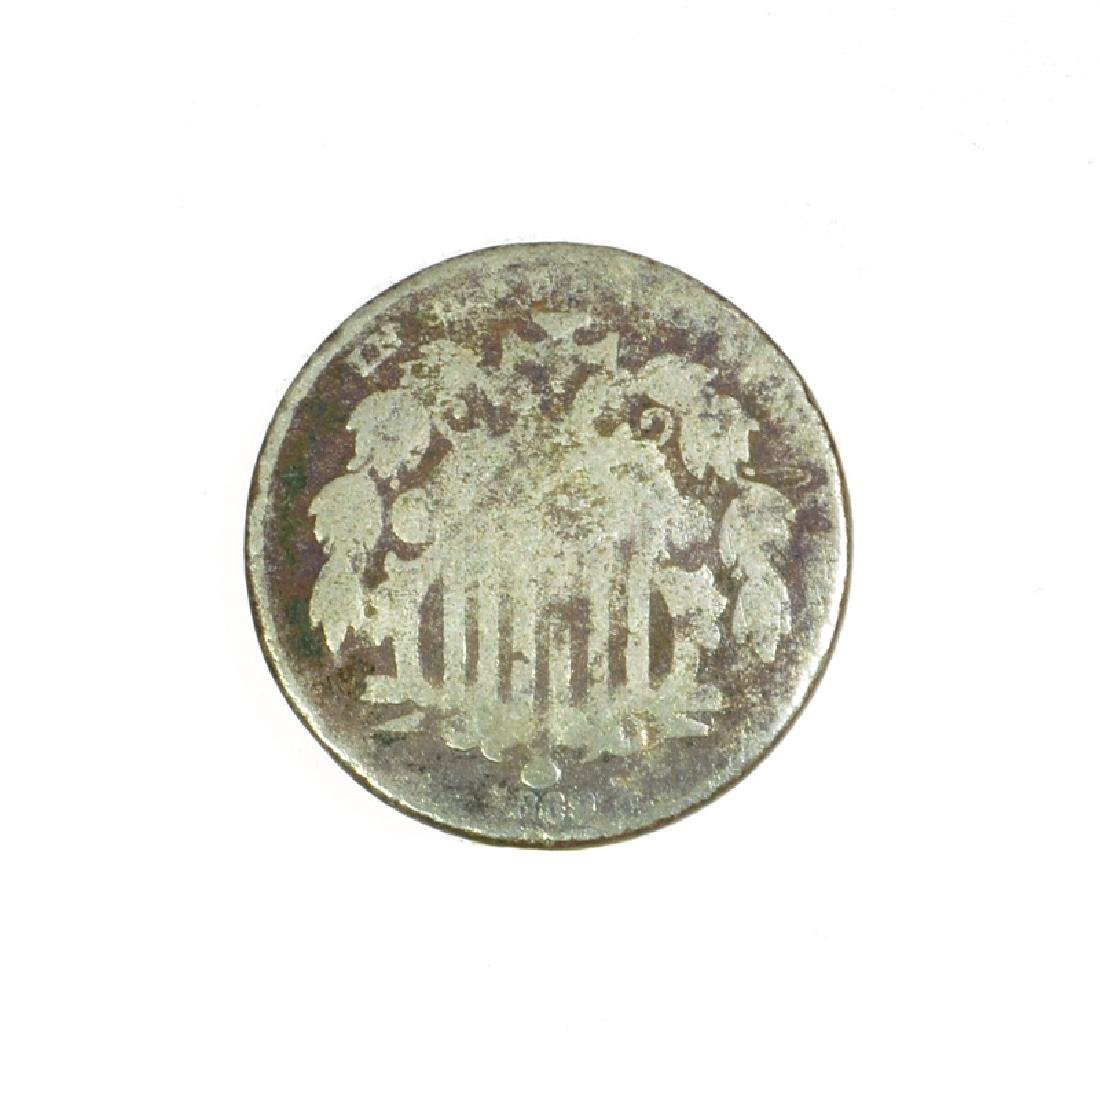 1869 Nickel Five Cent Piece Coin - 2